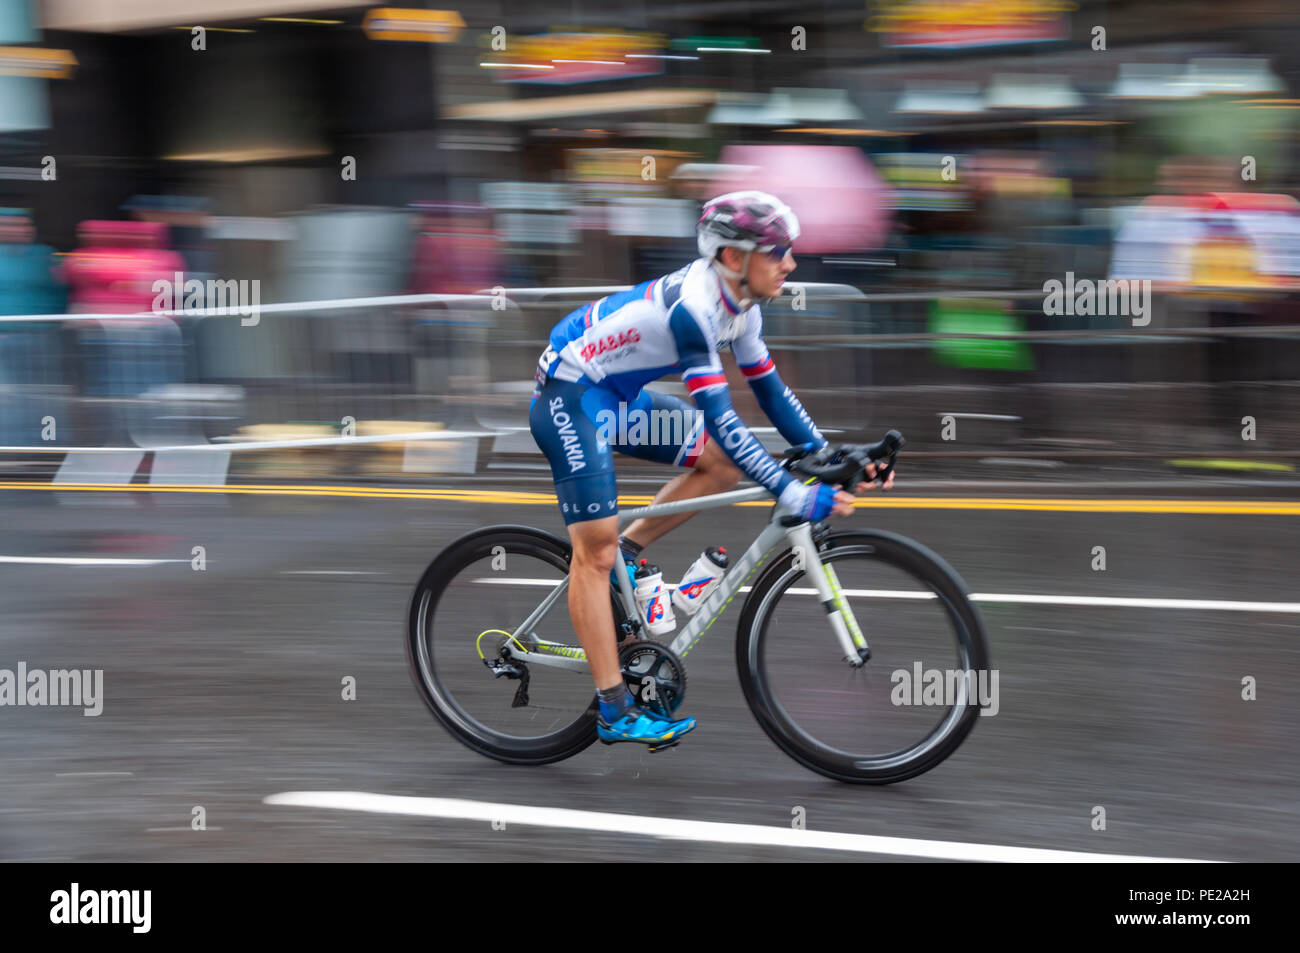 Glasgow, Scotland, UK. 12th August, 2018. A cyclist travels down High Street during the Men's Cycling Road Race covering 16 laps and 230 km through the streets of the city on day eleven of the European Championships Glasgow 2018. Credit: Skully/Alamy Live News - Stock Image